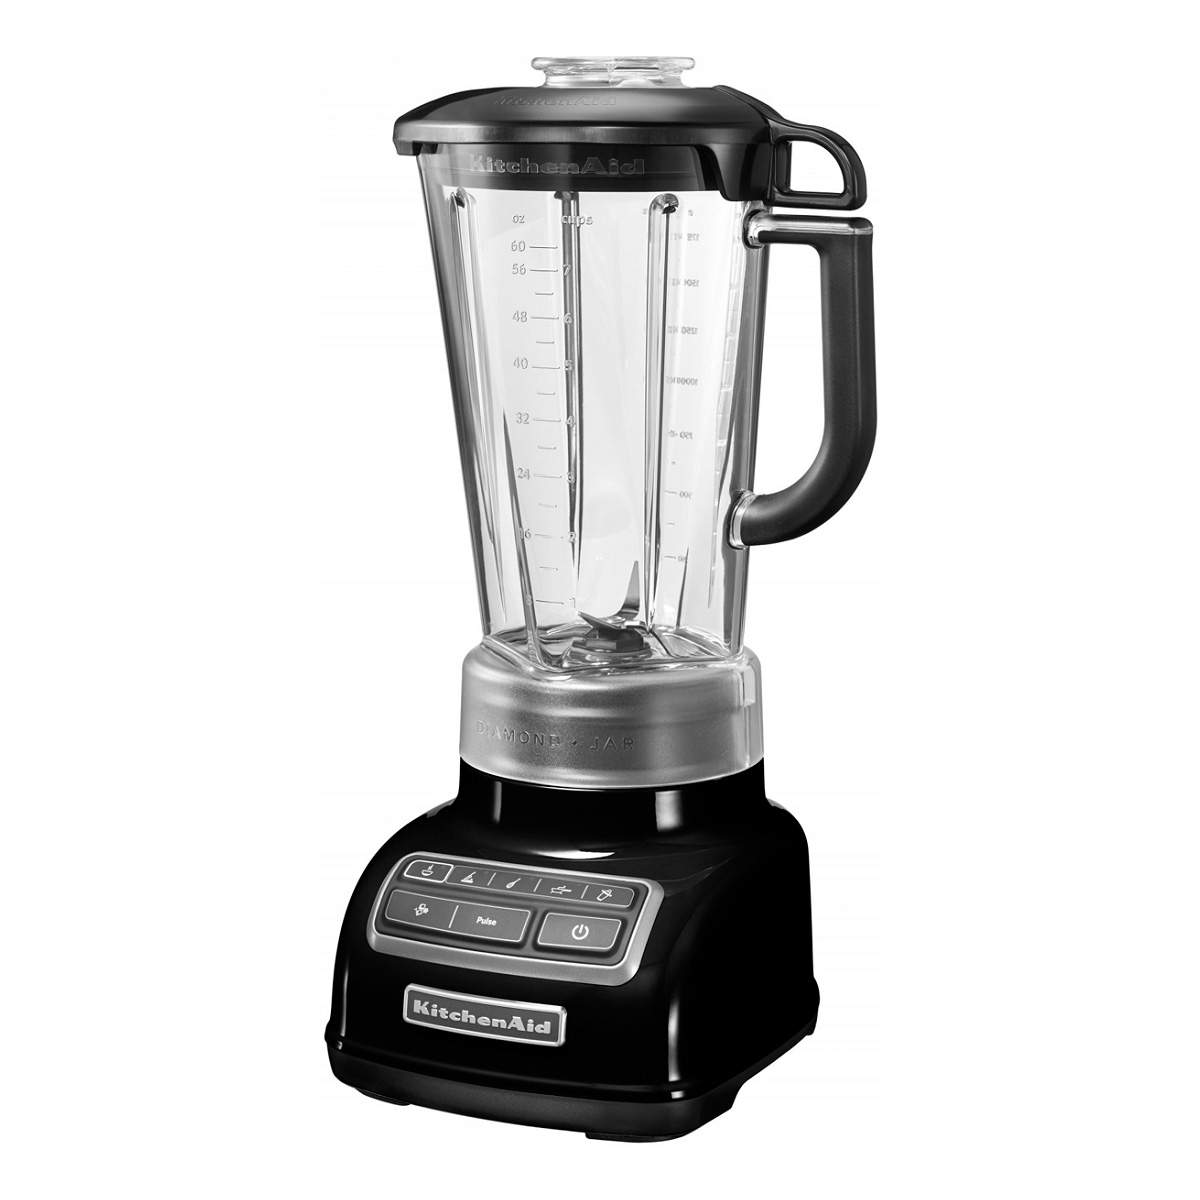 KitchenAid Blender 95620